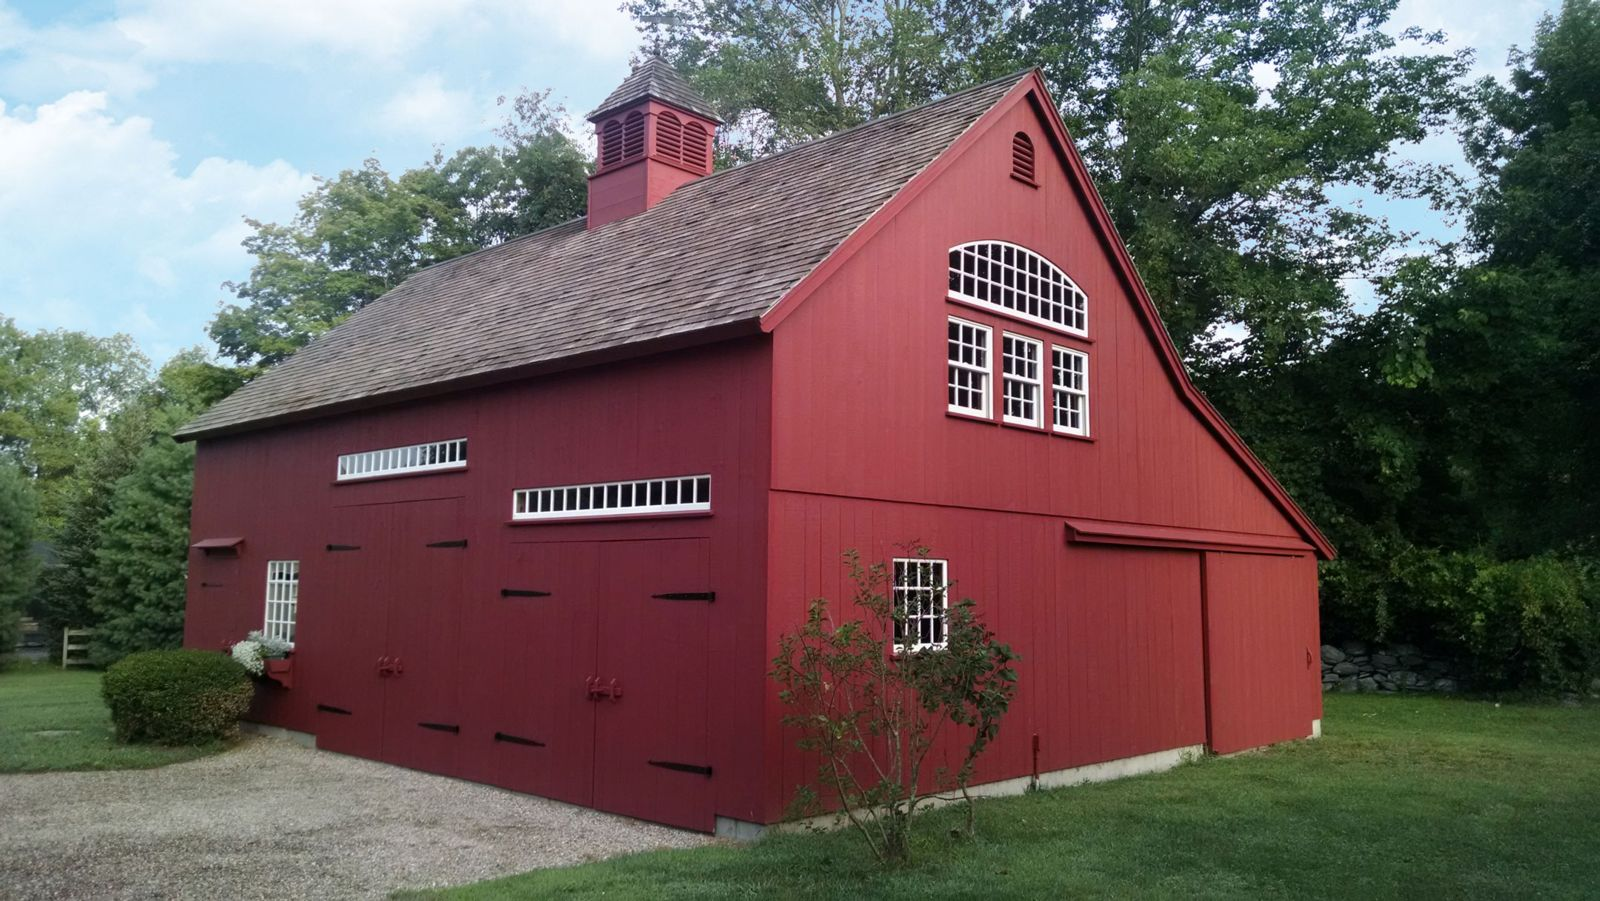 barn sheds new england style post and beam 1-1/2 story barn PAQIYQG